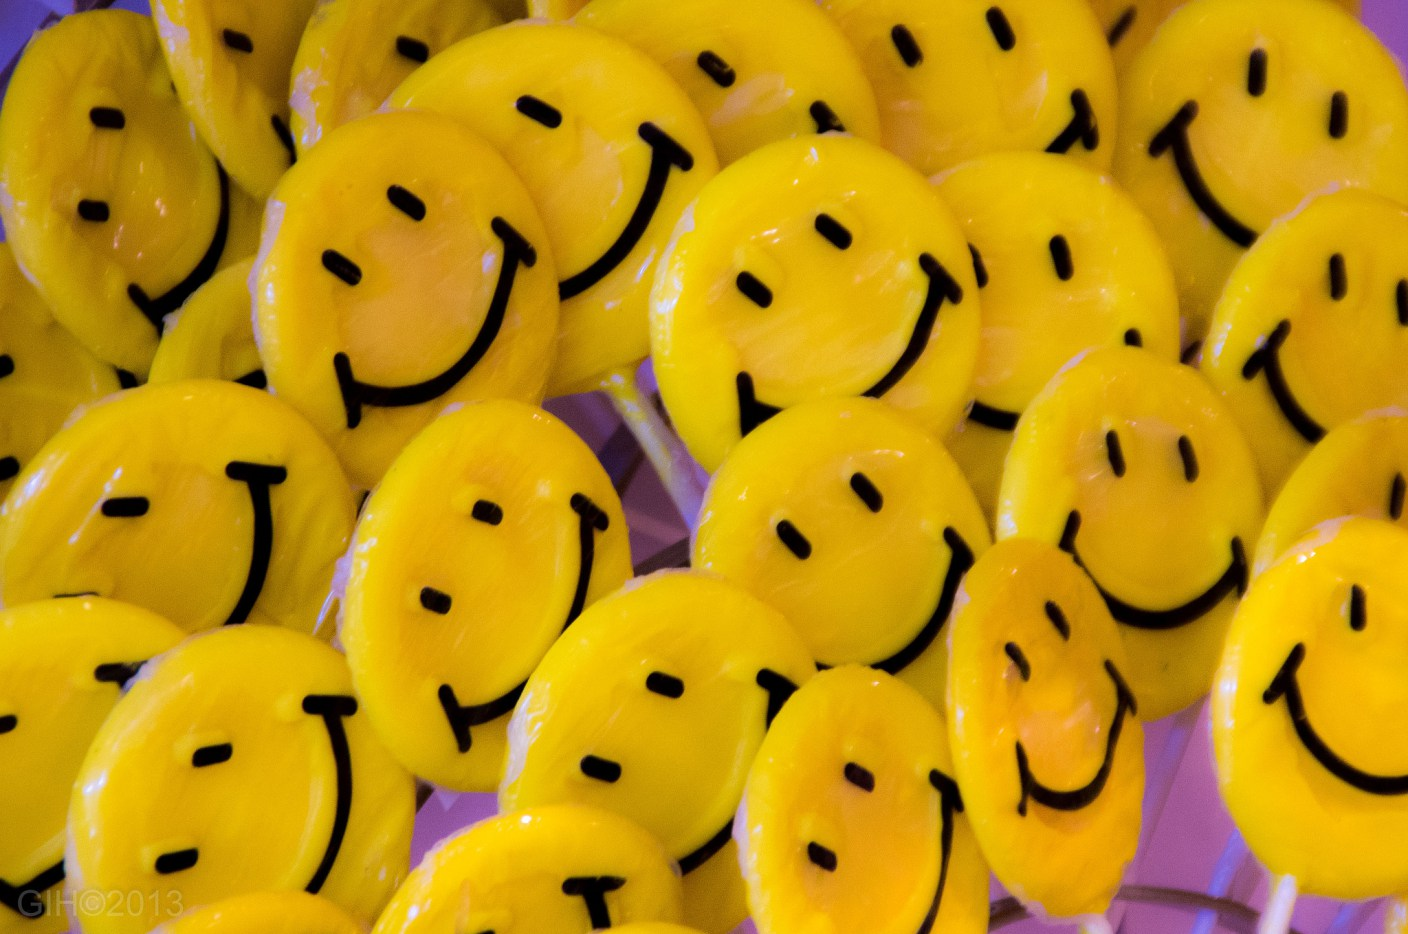 smileys, emojis, emoticons : l'addiction ?